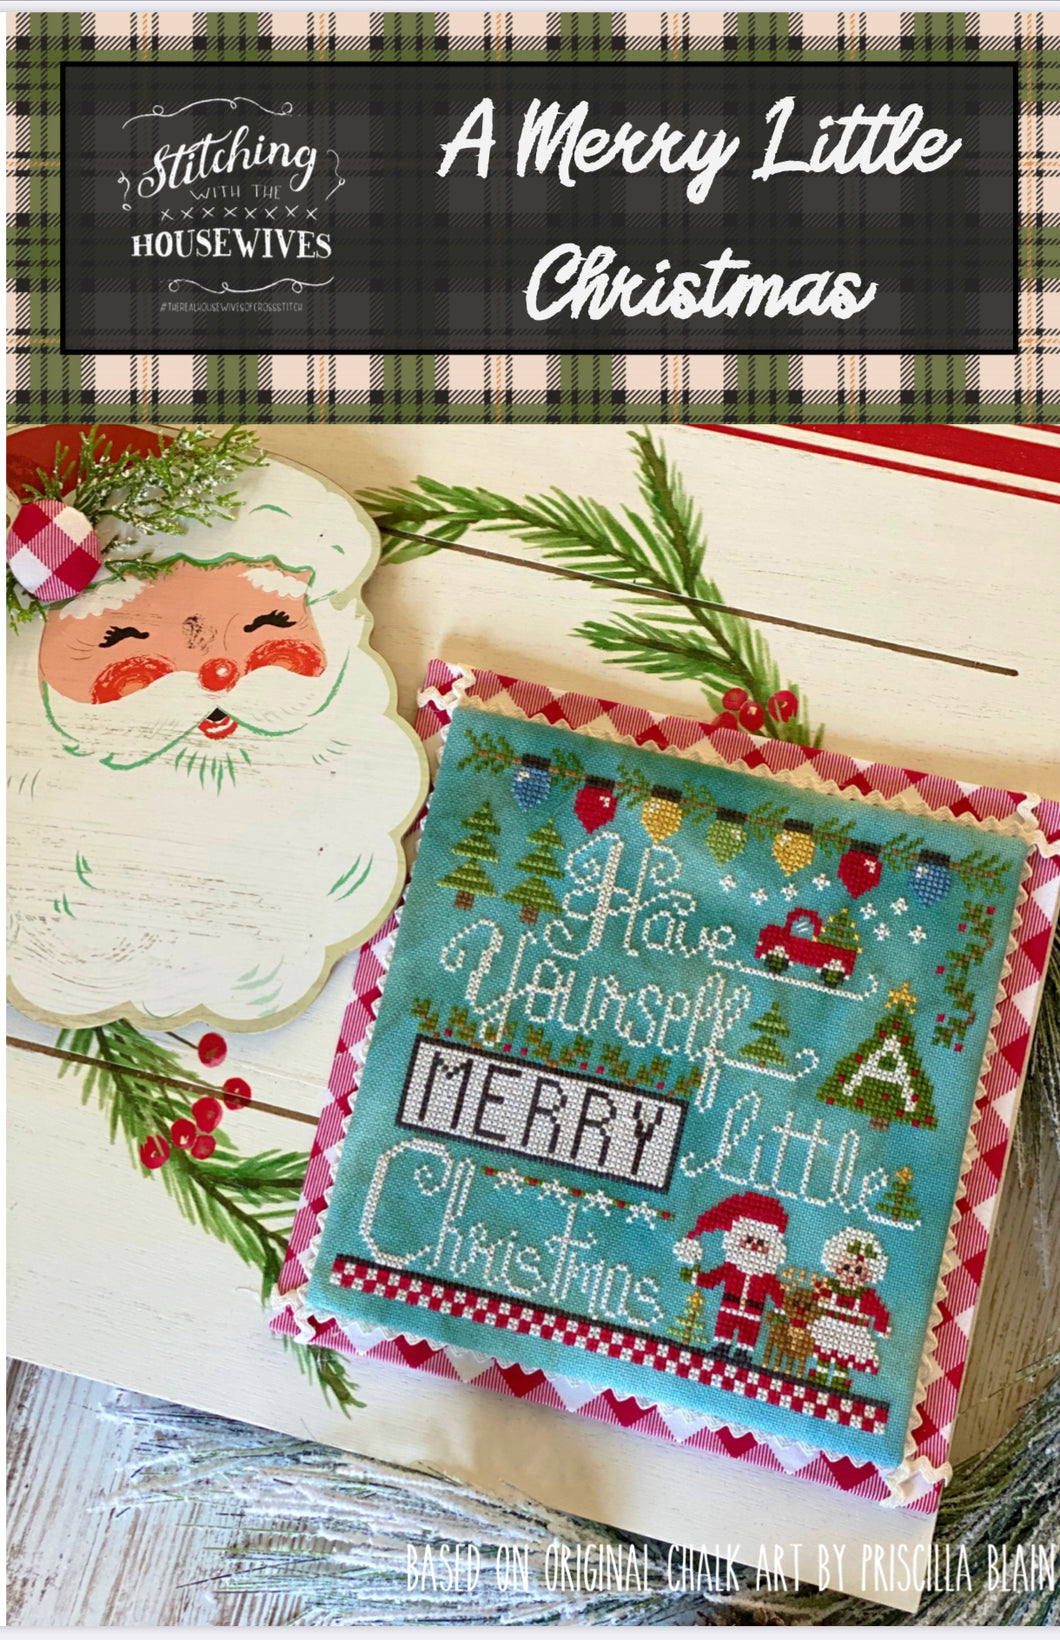 A Merry Little Christmas by Stitching With the Housewives